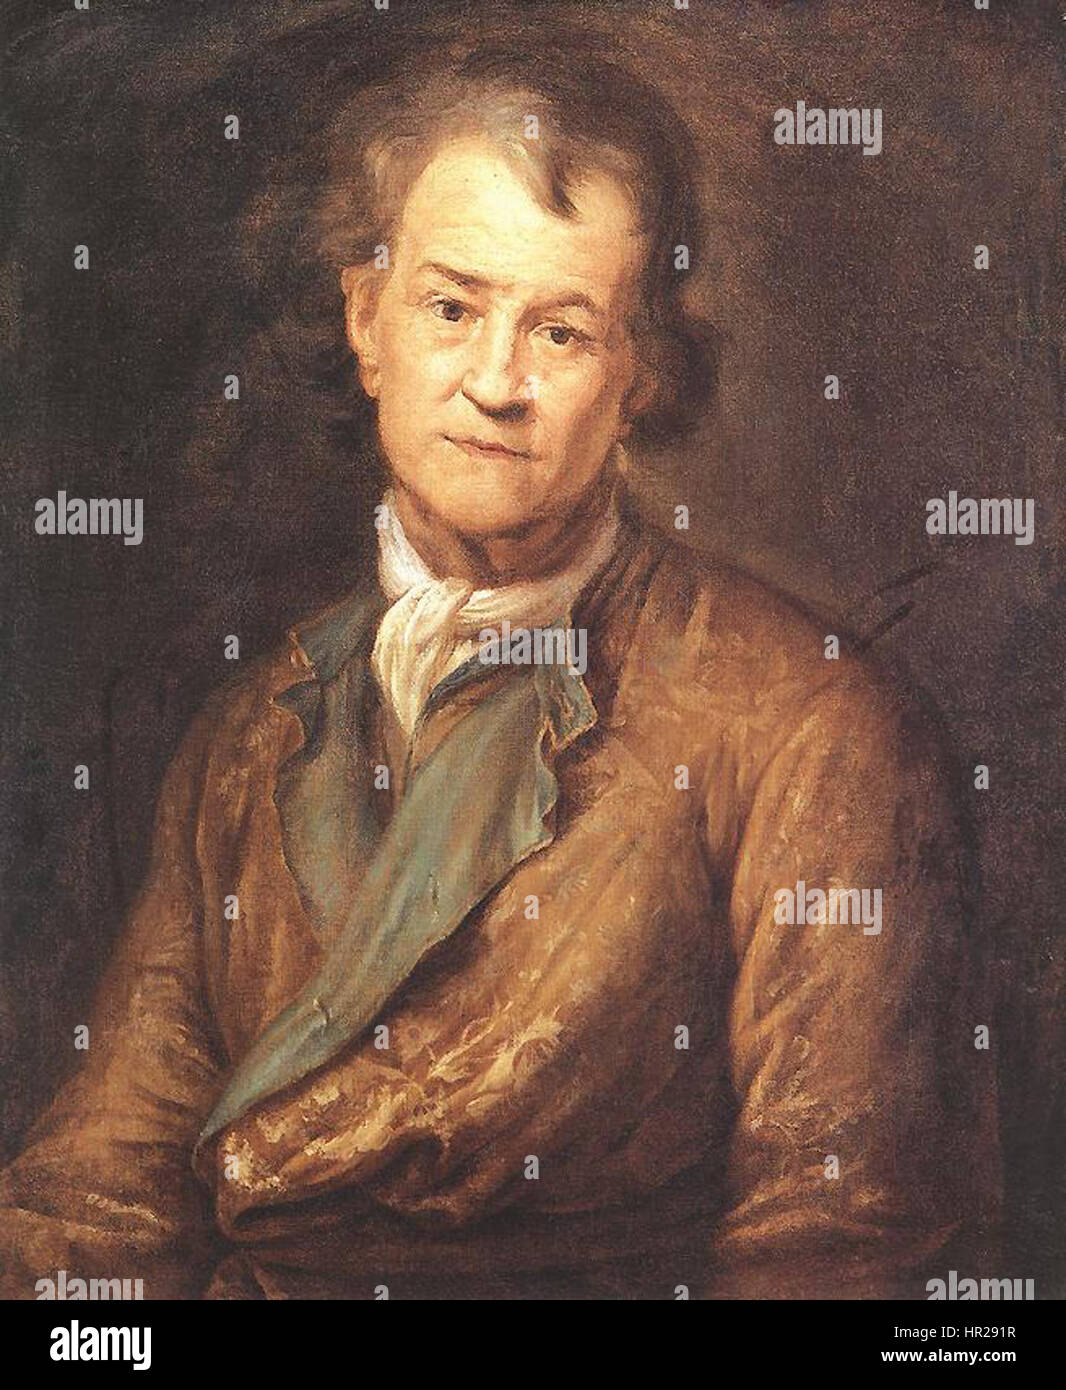 Pierre Puget - Self-portrait in Old Age - WGA18488 - Stock Image